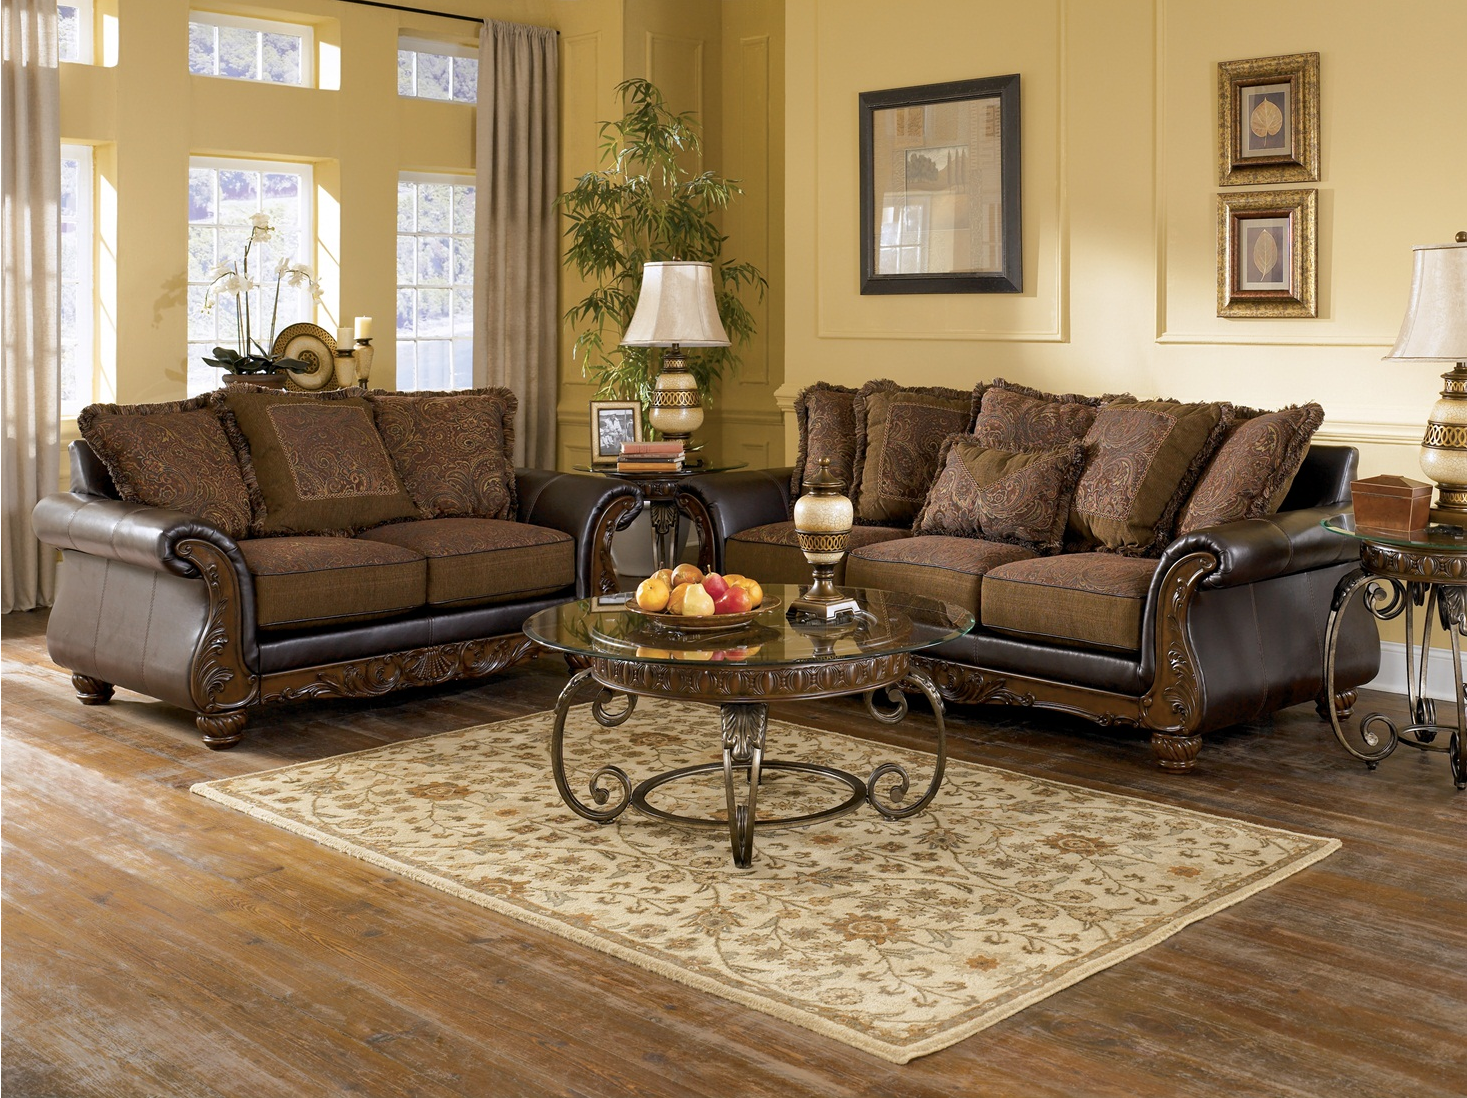 Amazing Ashley Furniture Living Room Sets 1467 x 1098 · 2634 kB · png